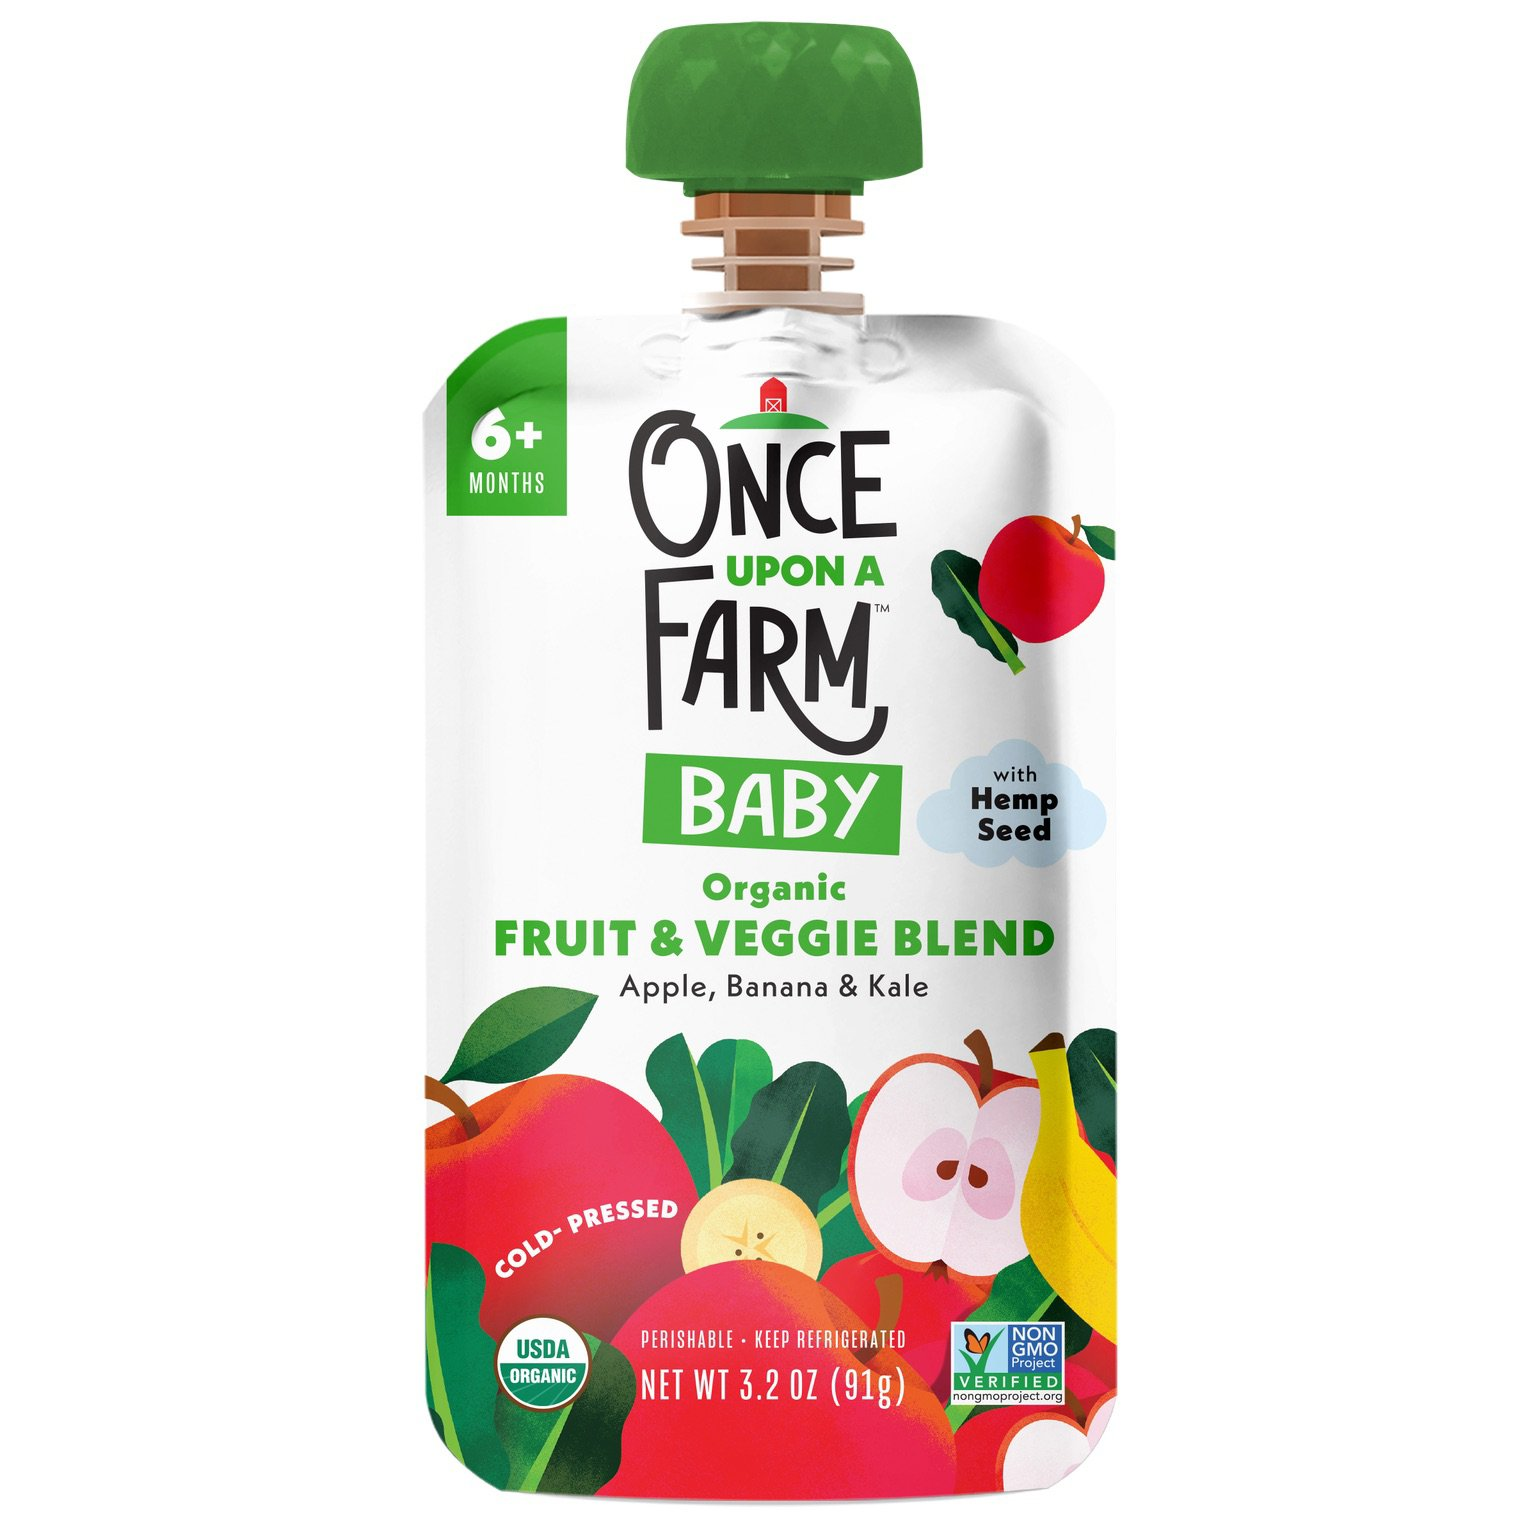 Once Upon A Farm Once Upon A Farm Green Kale Apple Shop Baby Food At H E B